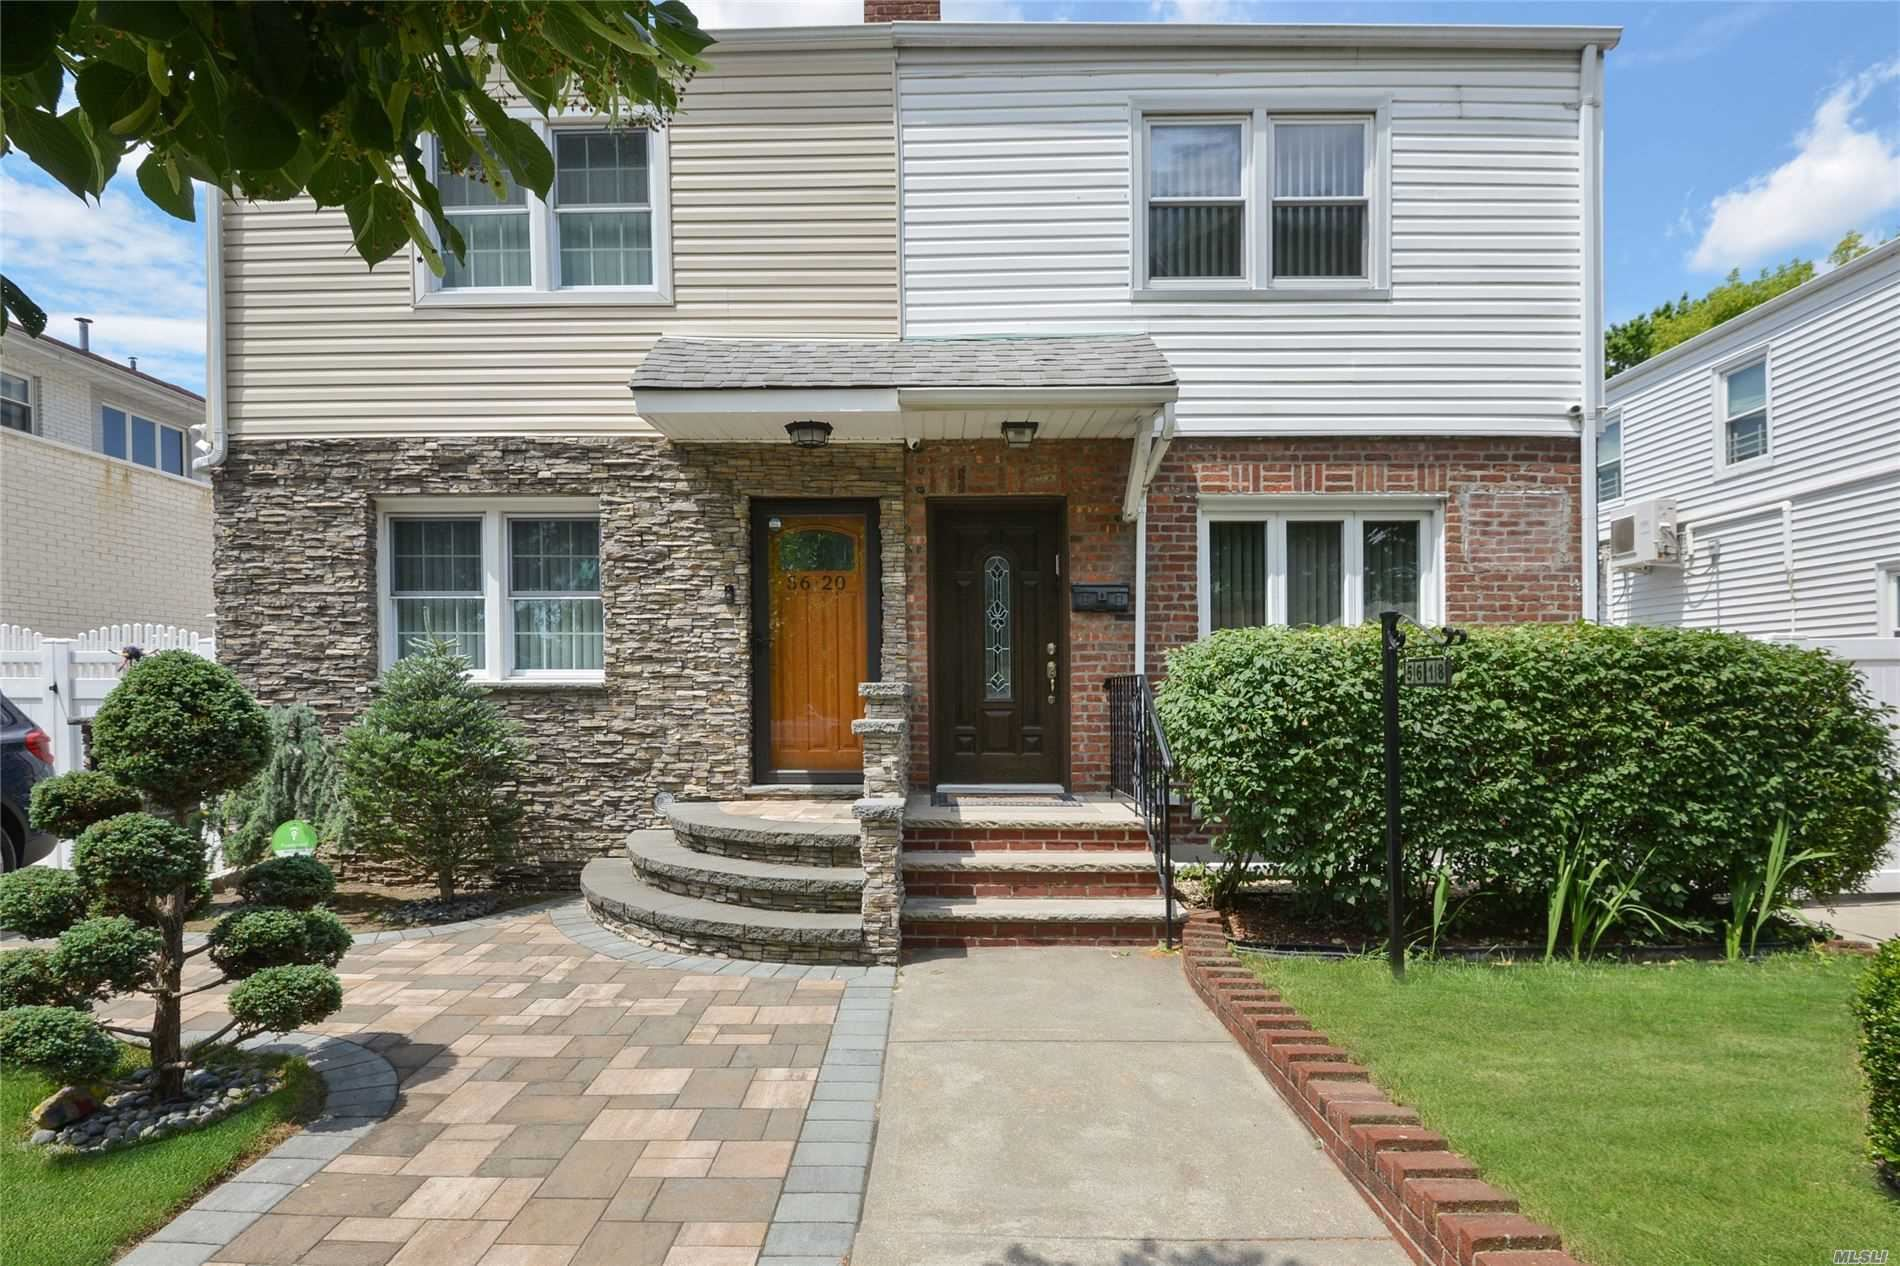 56-18 185 Street, Fresh Meadows, NY 11365 - MLS#: 3227679